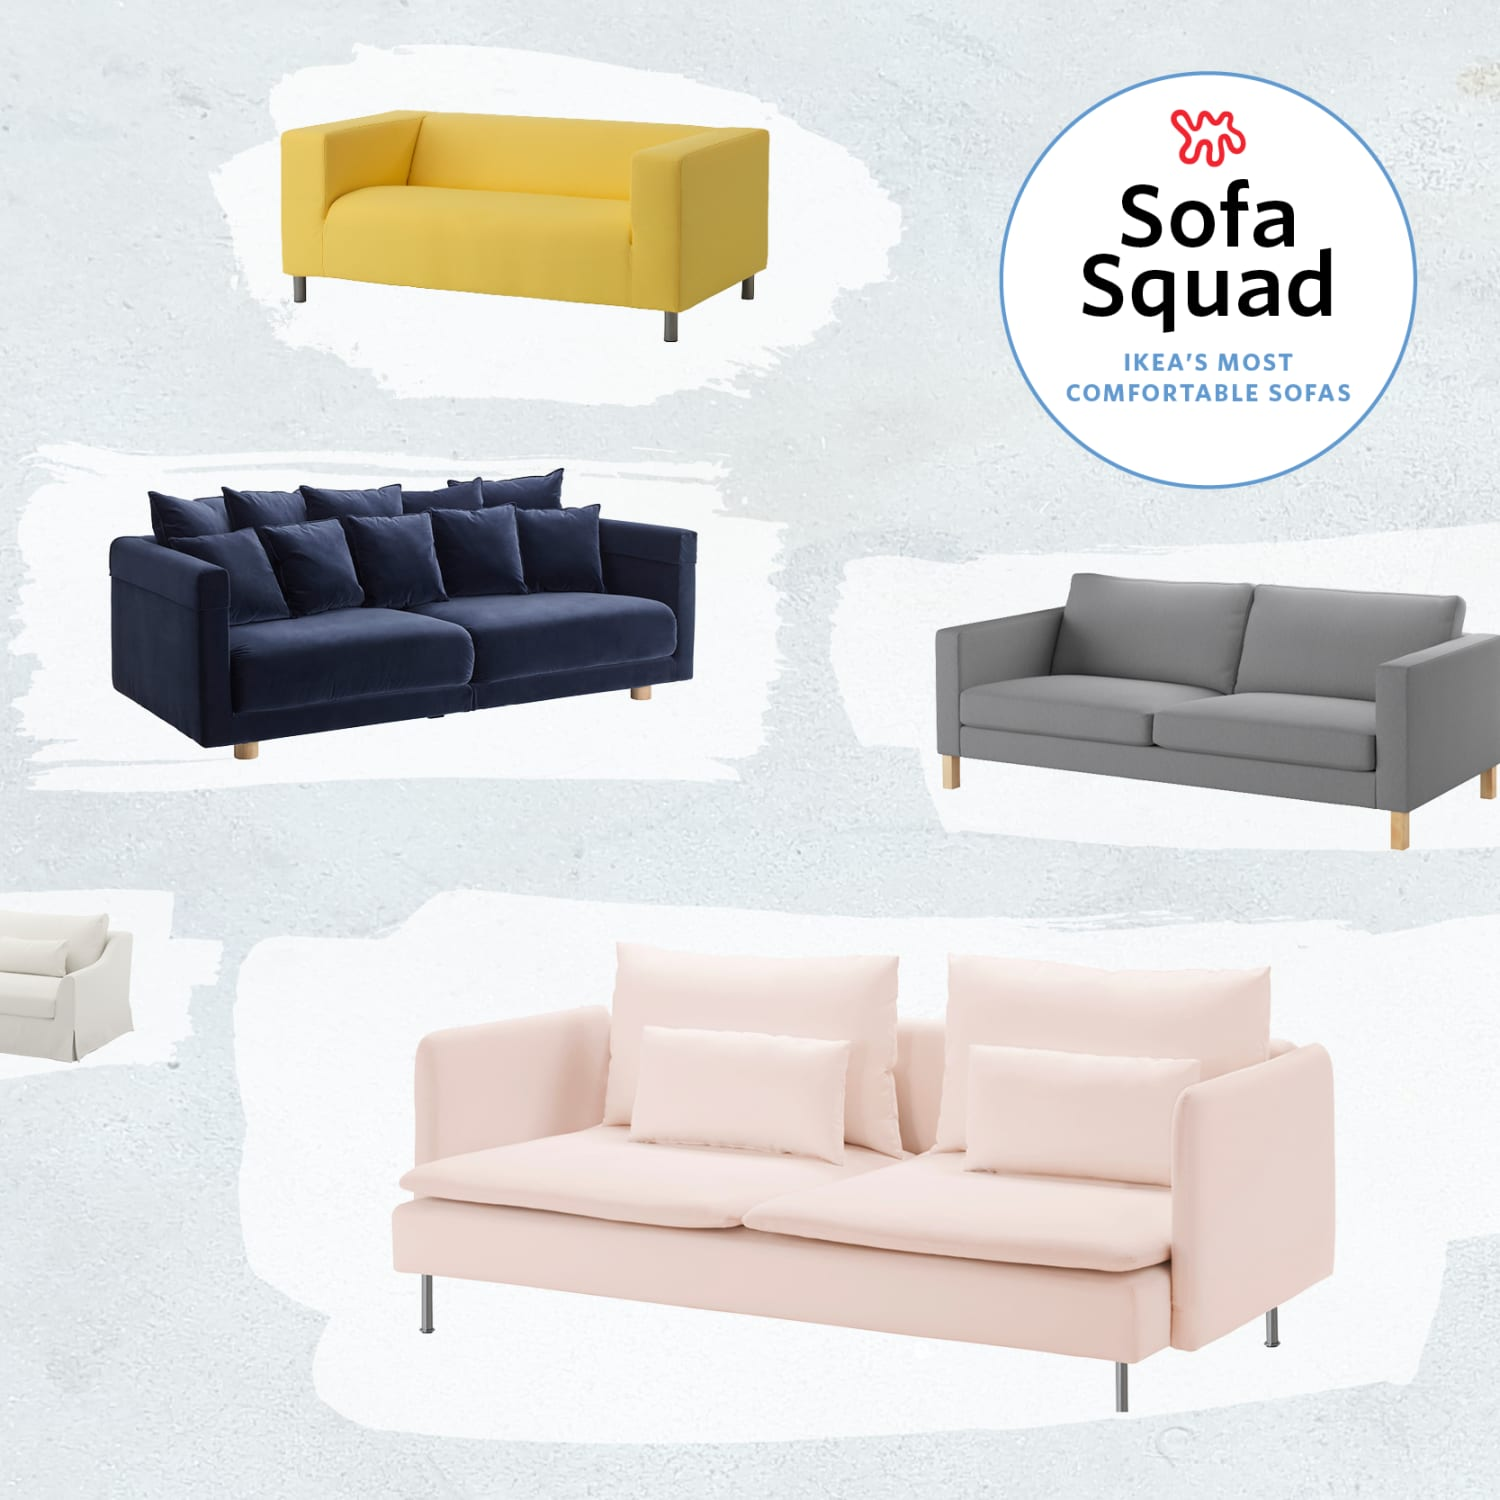 Landskrona Ikea Ecksofa The Best Most Comfortable Ikea Sofas Apartment Therapy